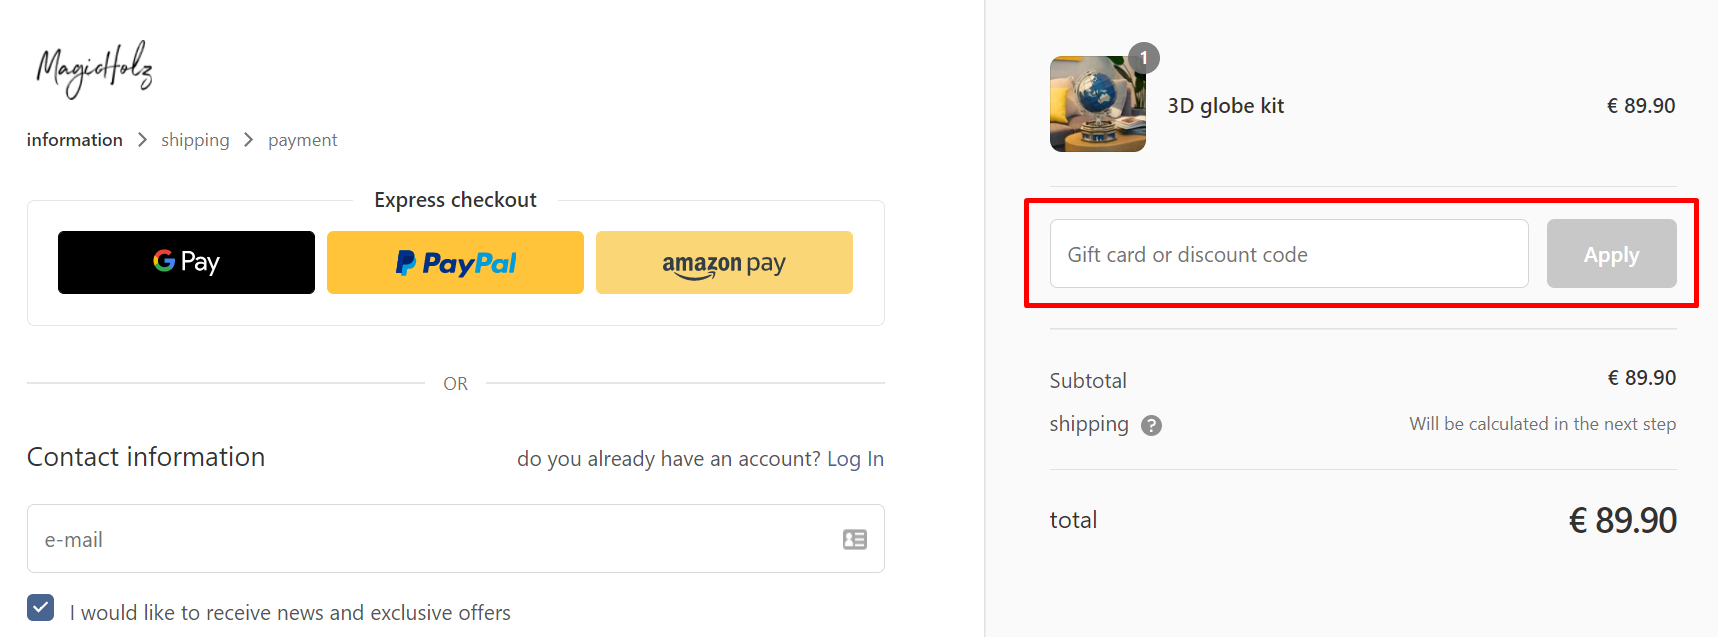 How do I use my MagicHolz discount code?